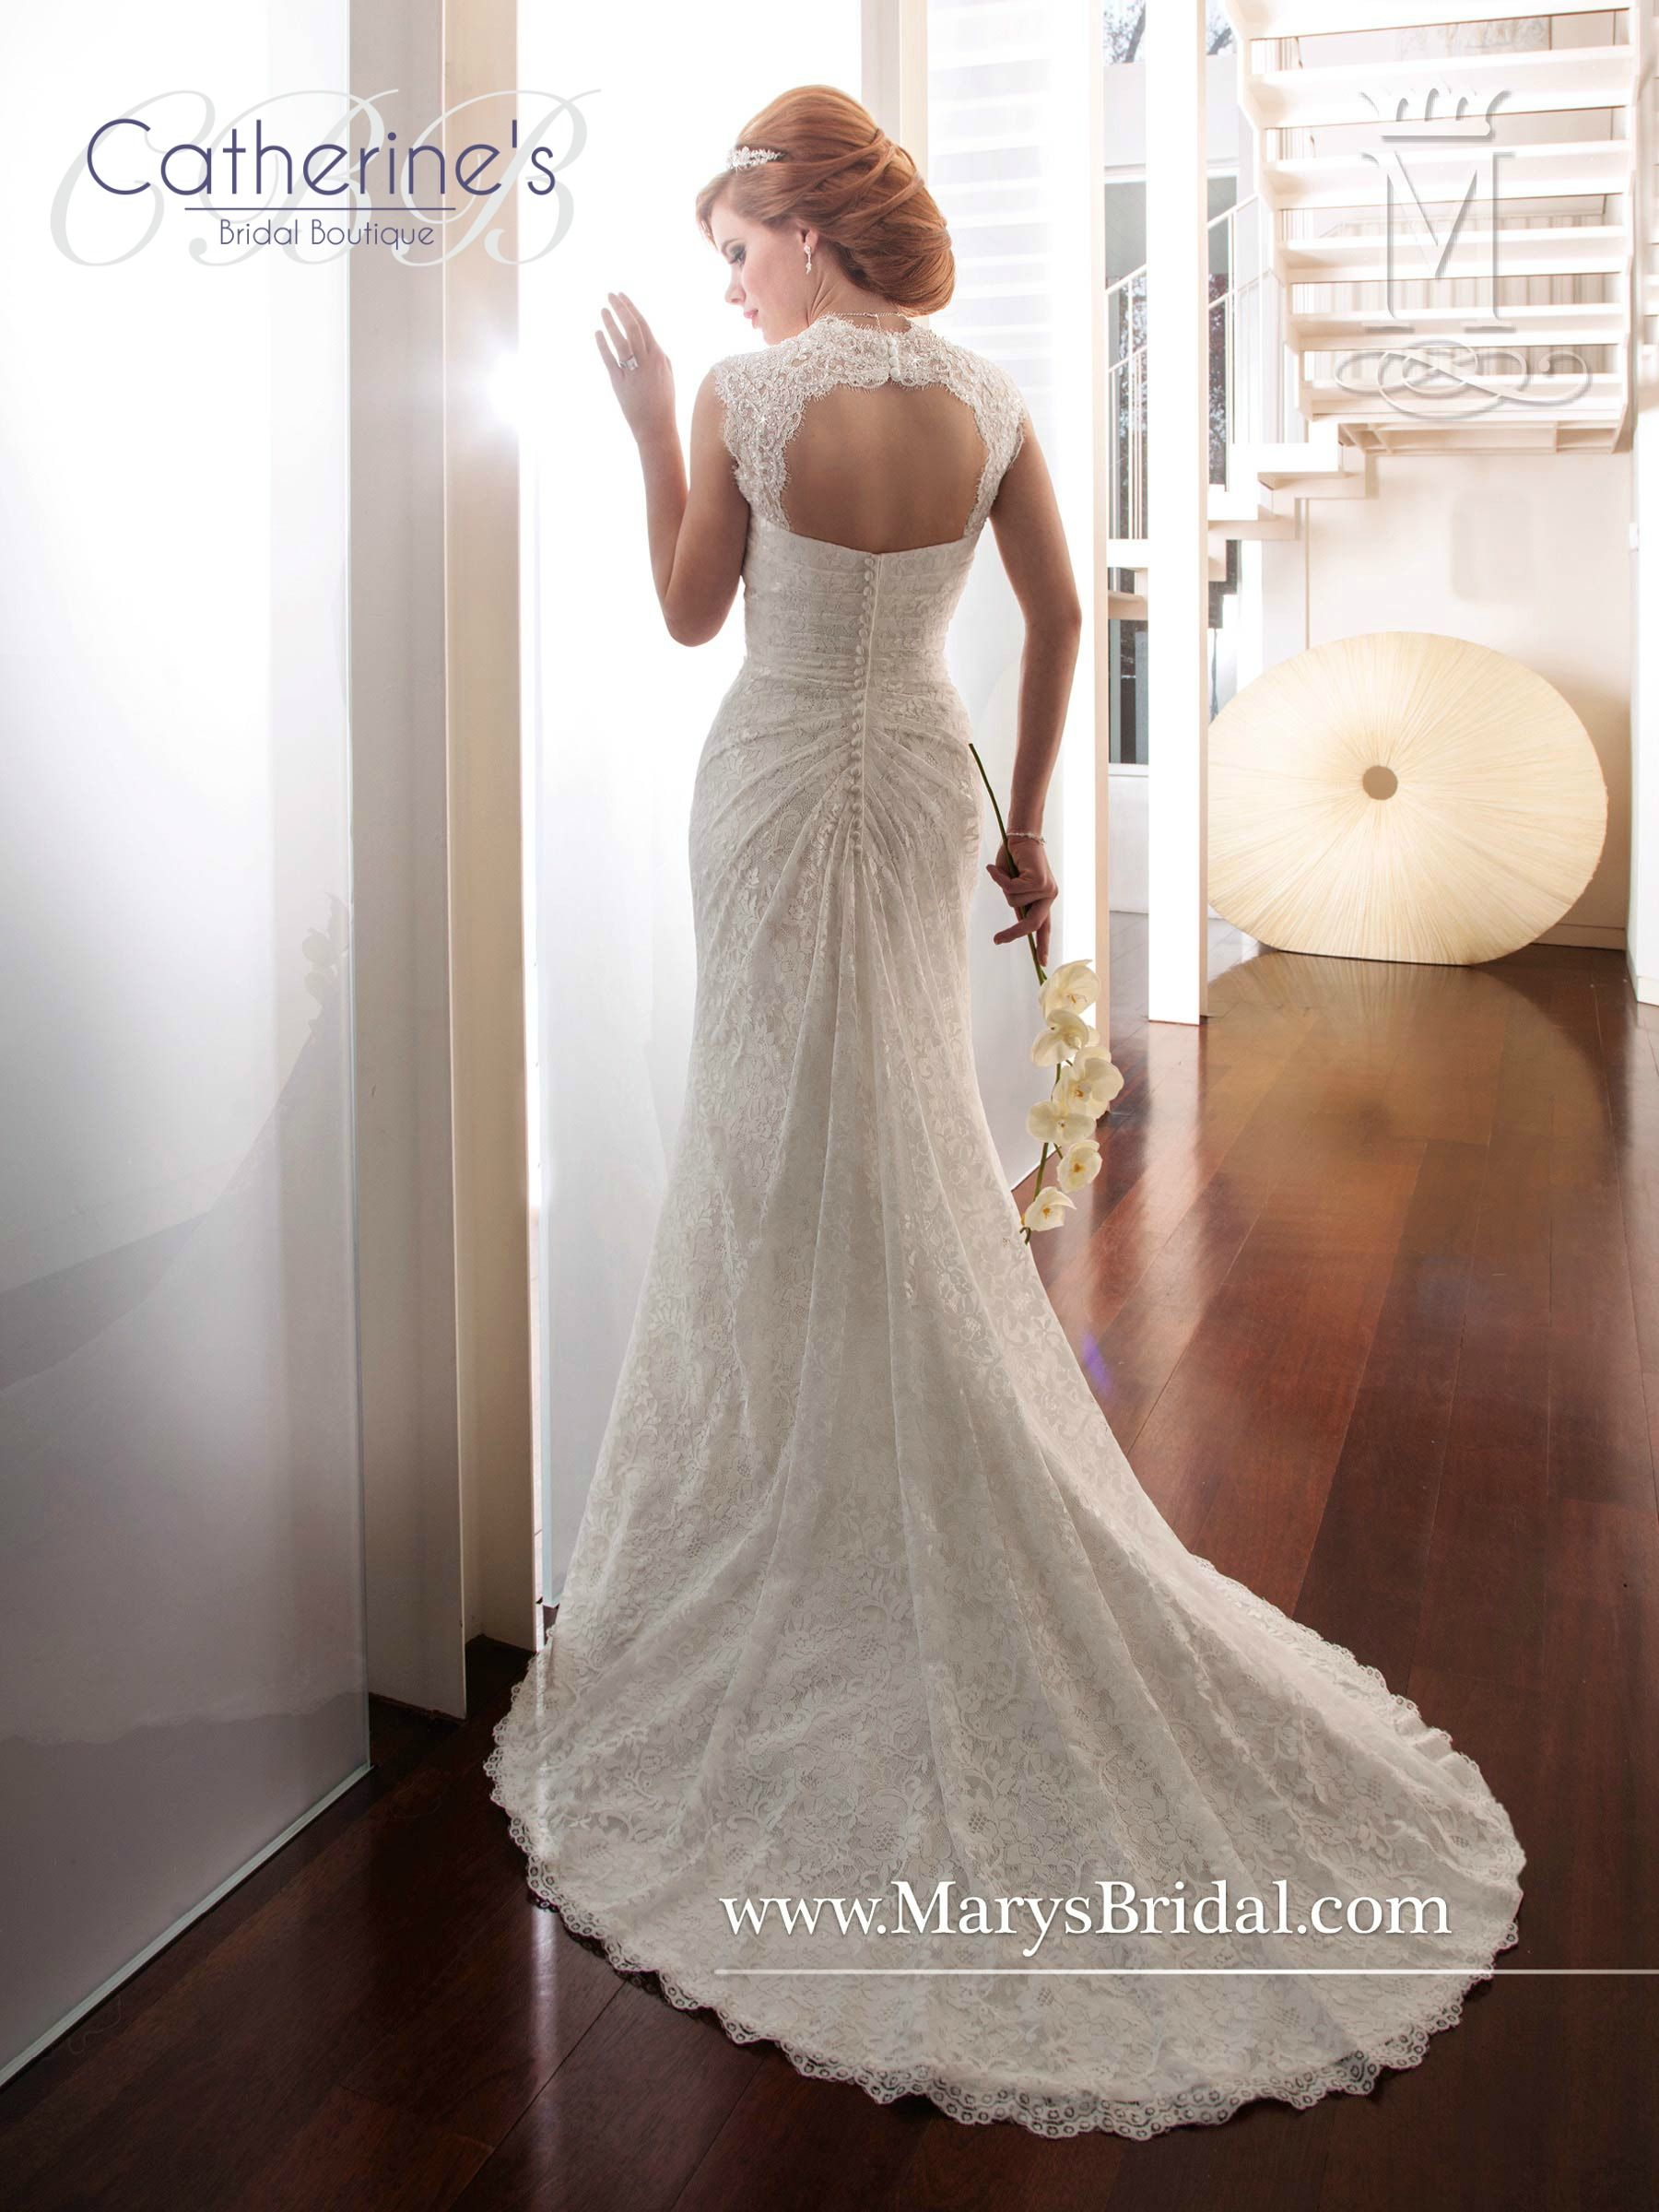 Bridal Gown Inventory ~ Find the wedding gown of your dreams at ...